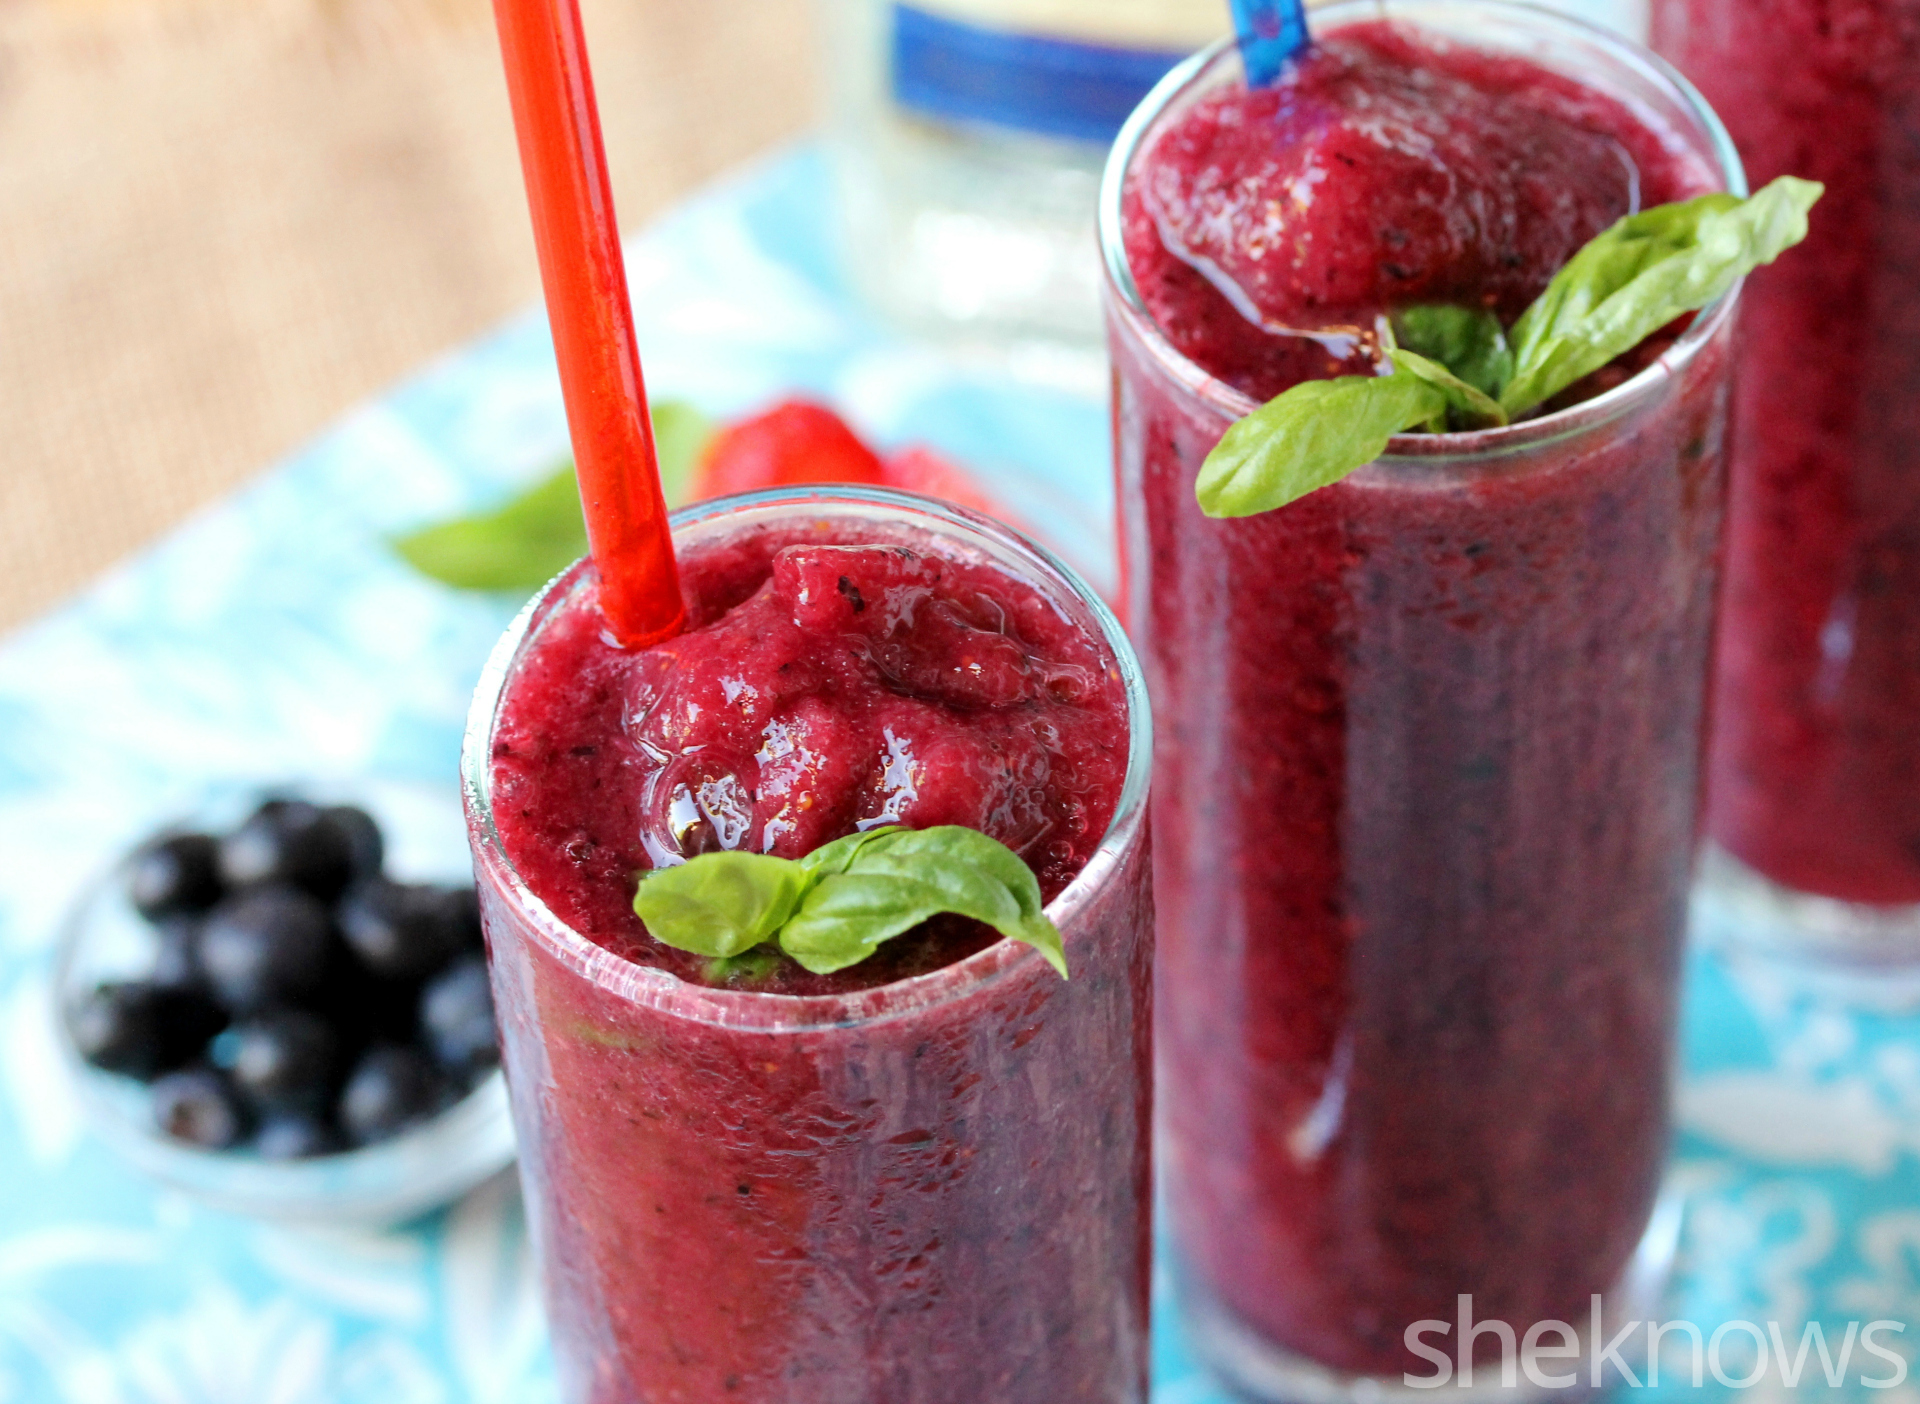 blend of strawberries, blueberries and blackberries gives this slushie ...